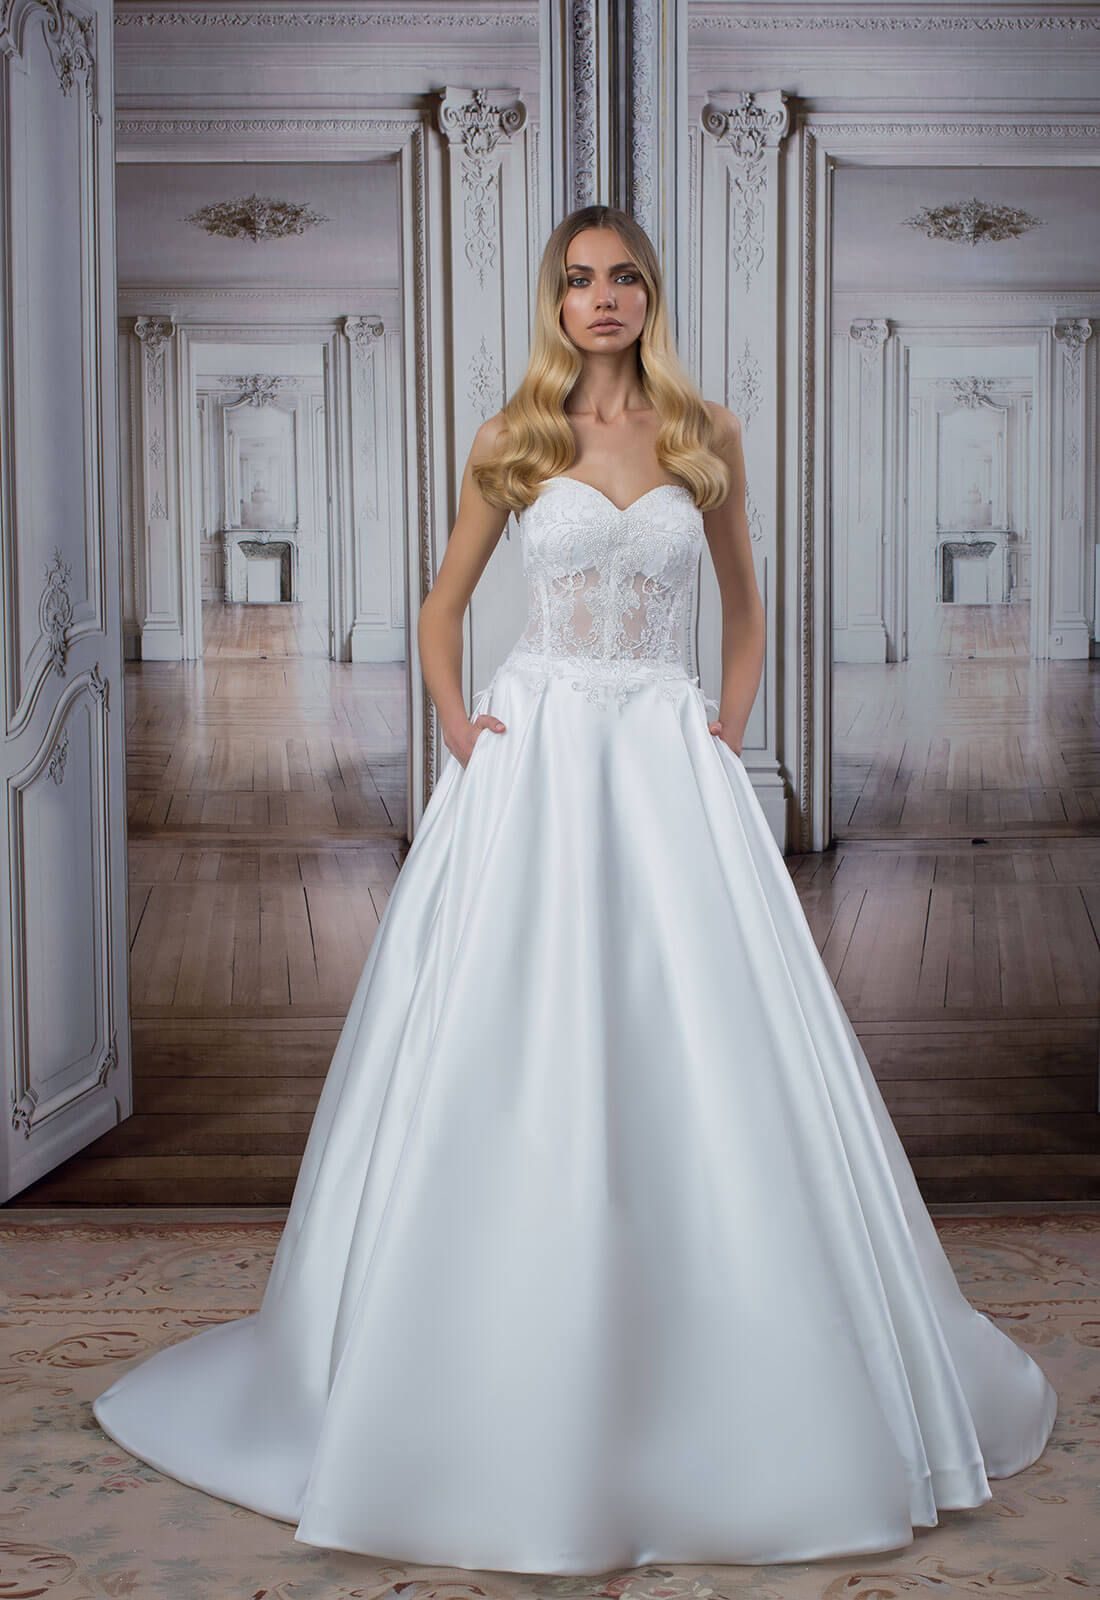 Style no pnina tornai love wedding gown collection